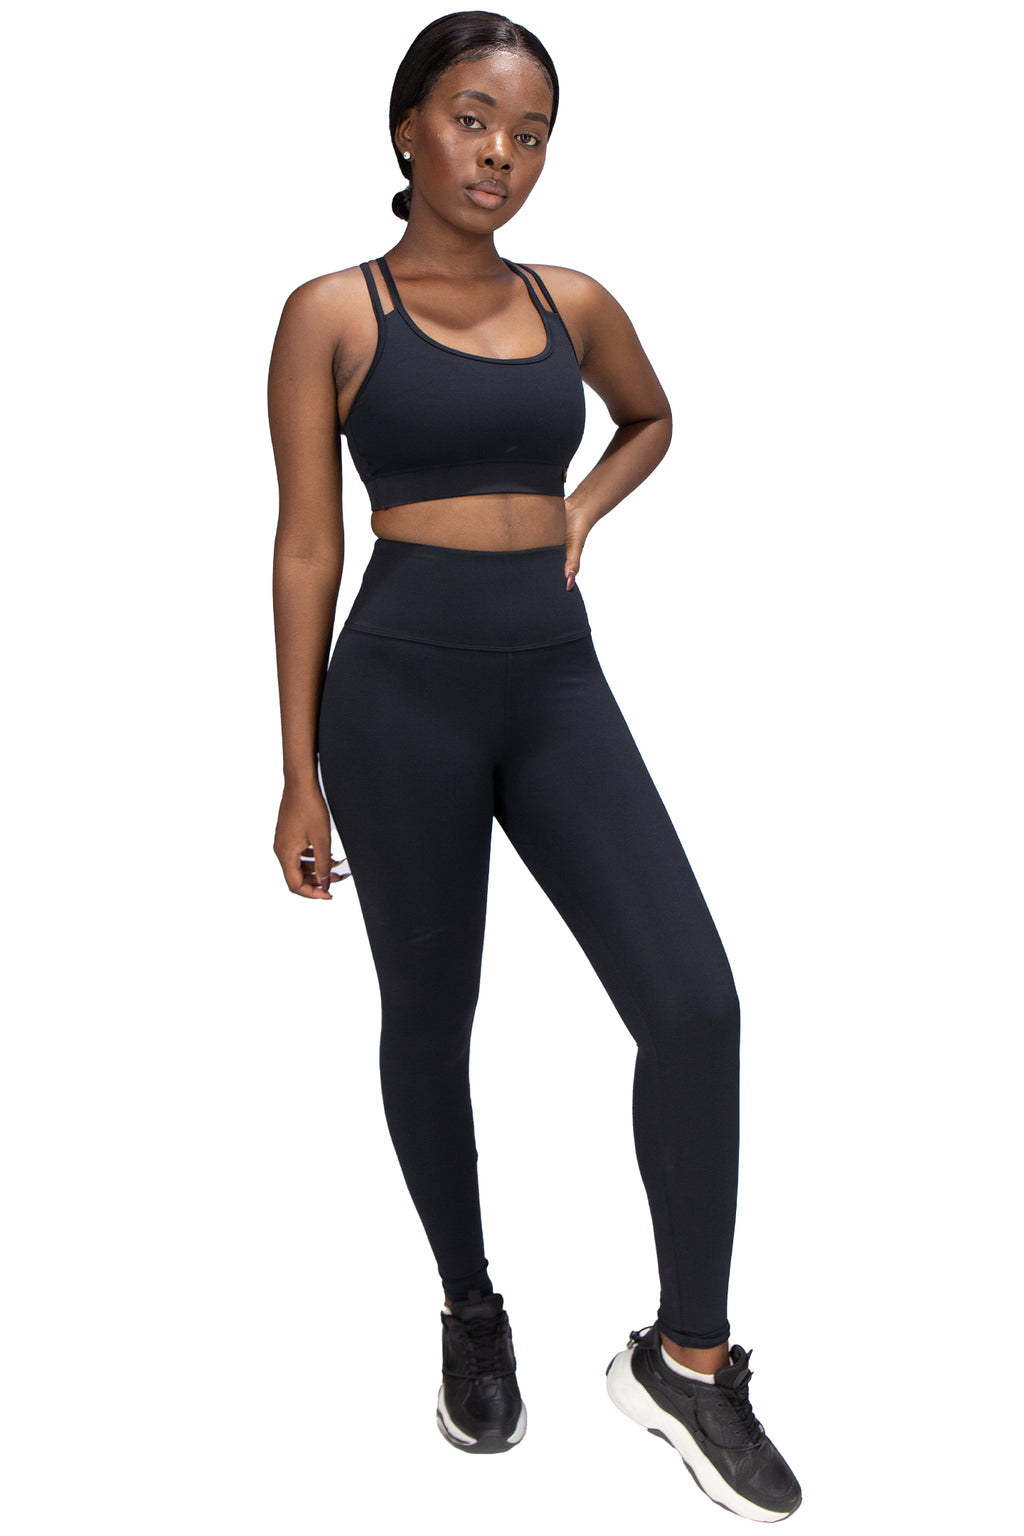 VPOP - Black Leggings NXT Fabric